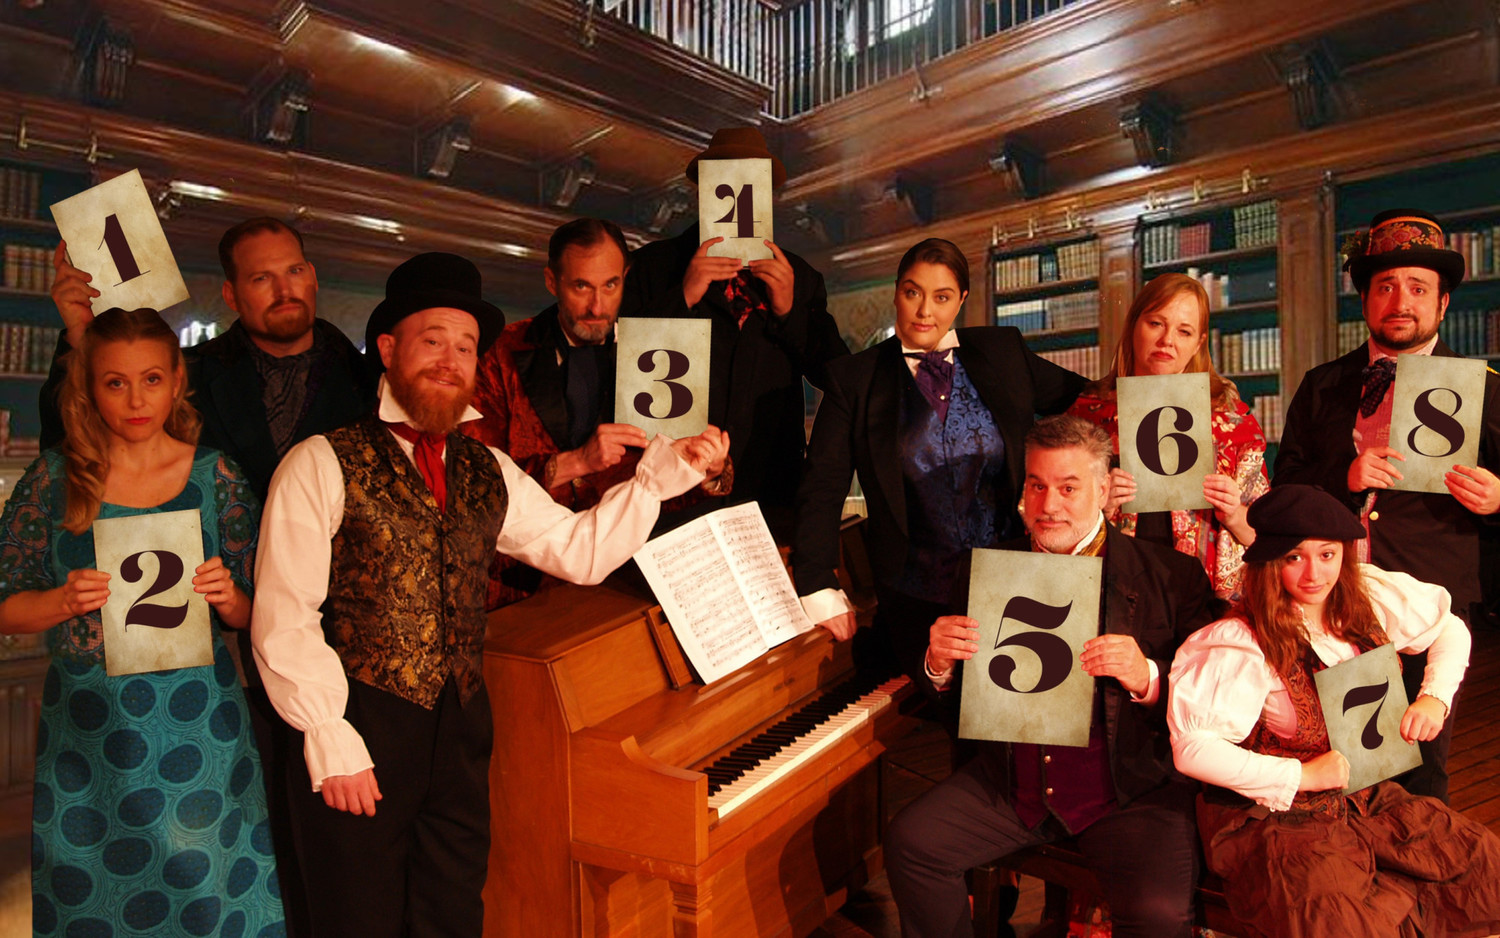 BWW Review: THE MYSTERY OF EDWIN DROOD THRILLS AND DELIGHTS NOW THRU NOV. 11 at 3Below